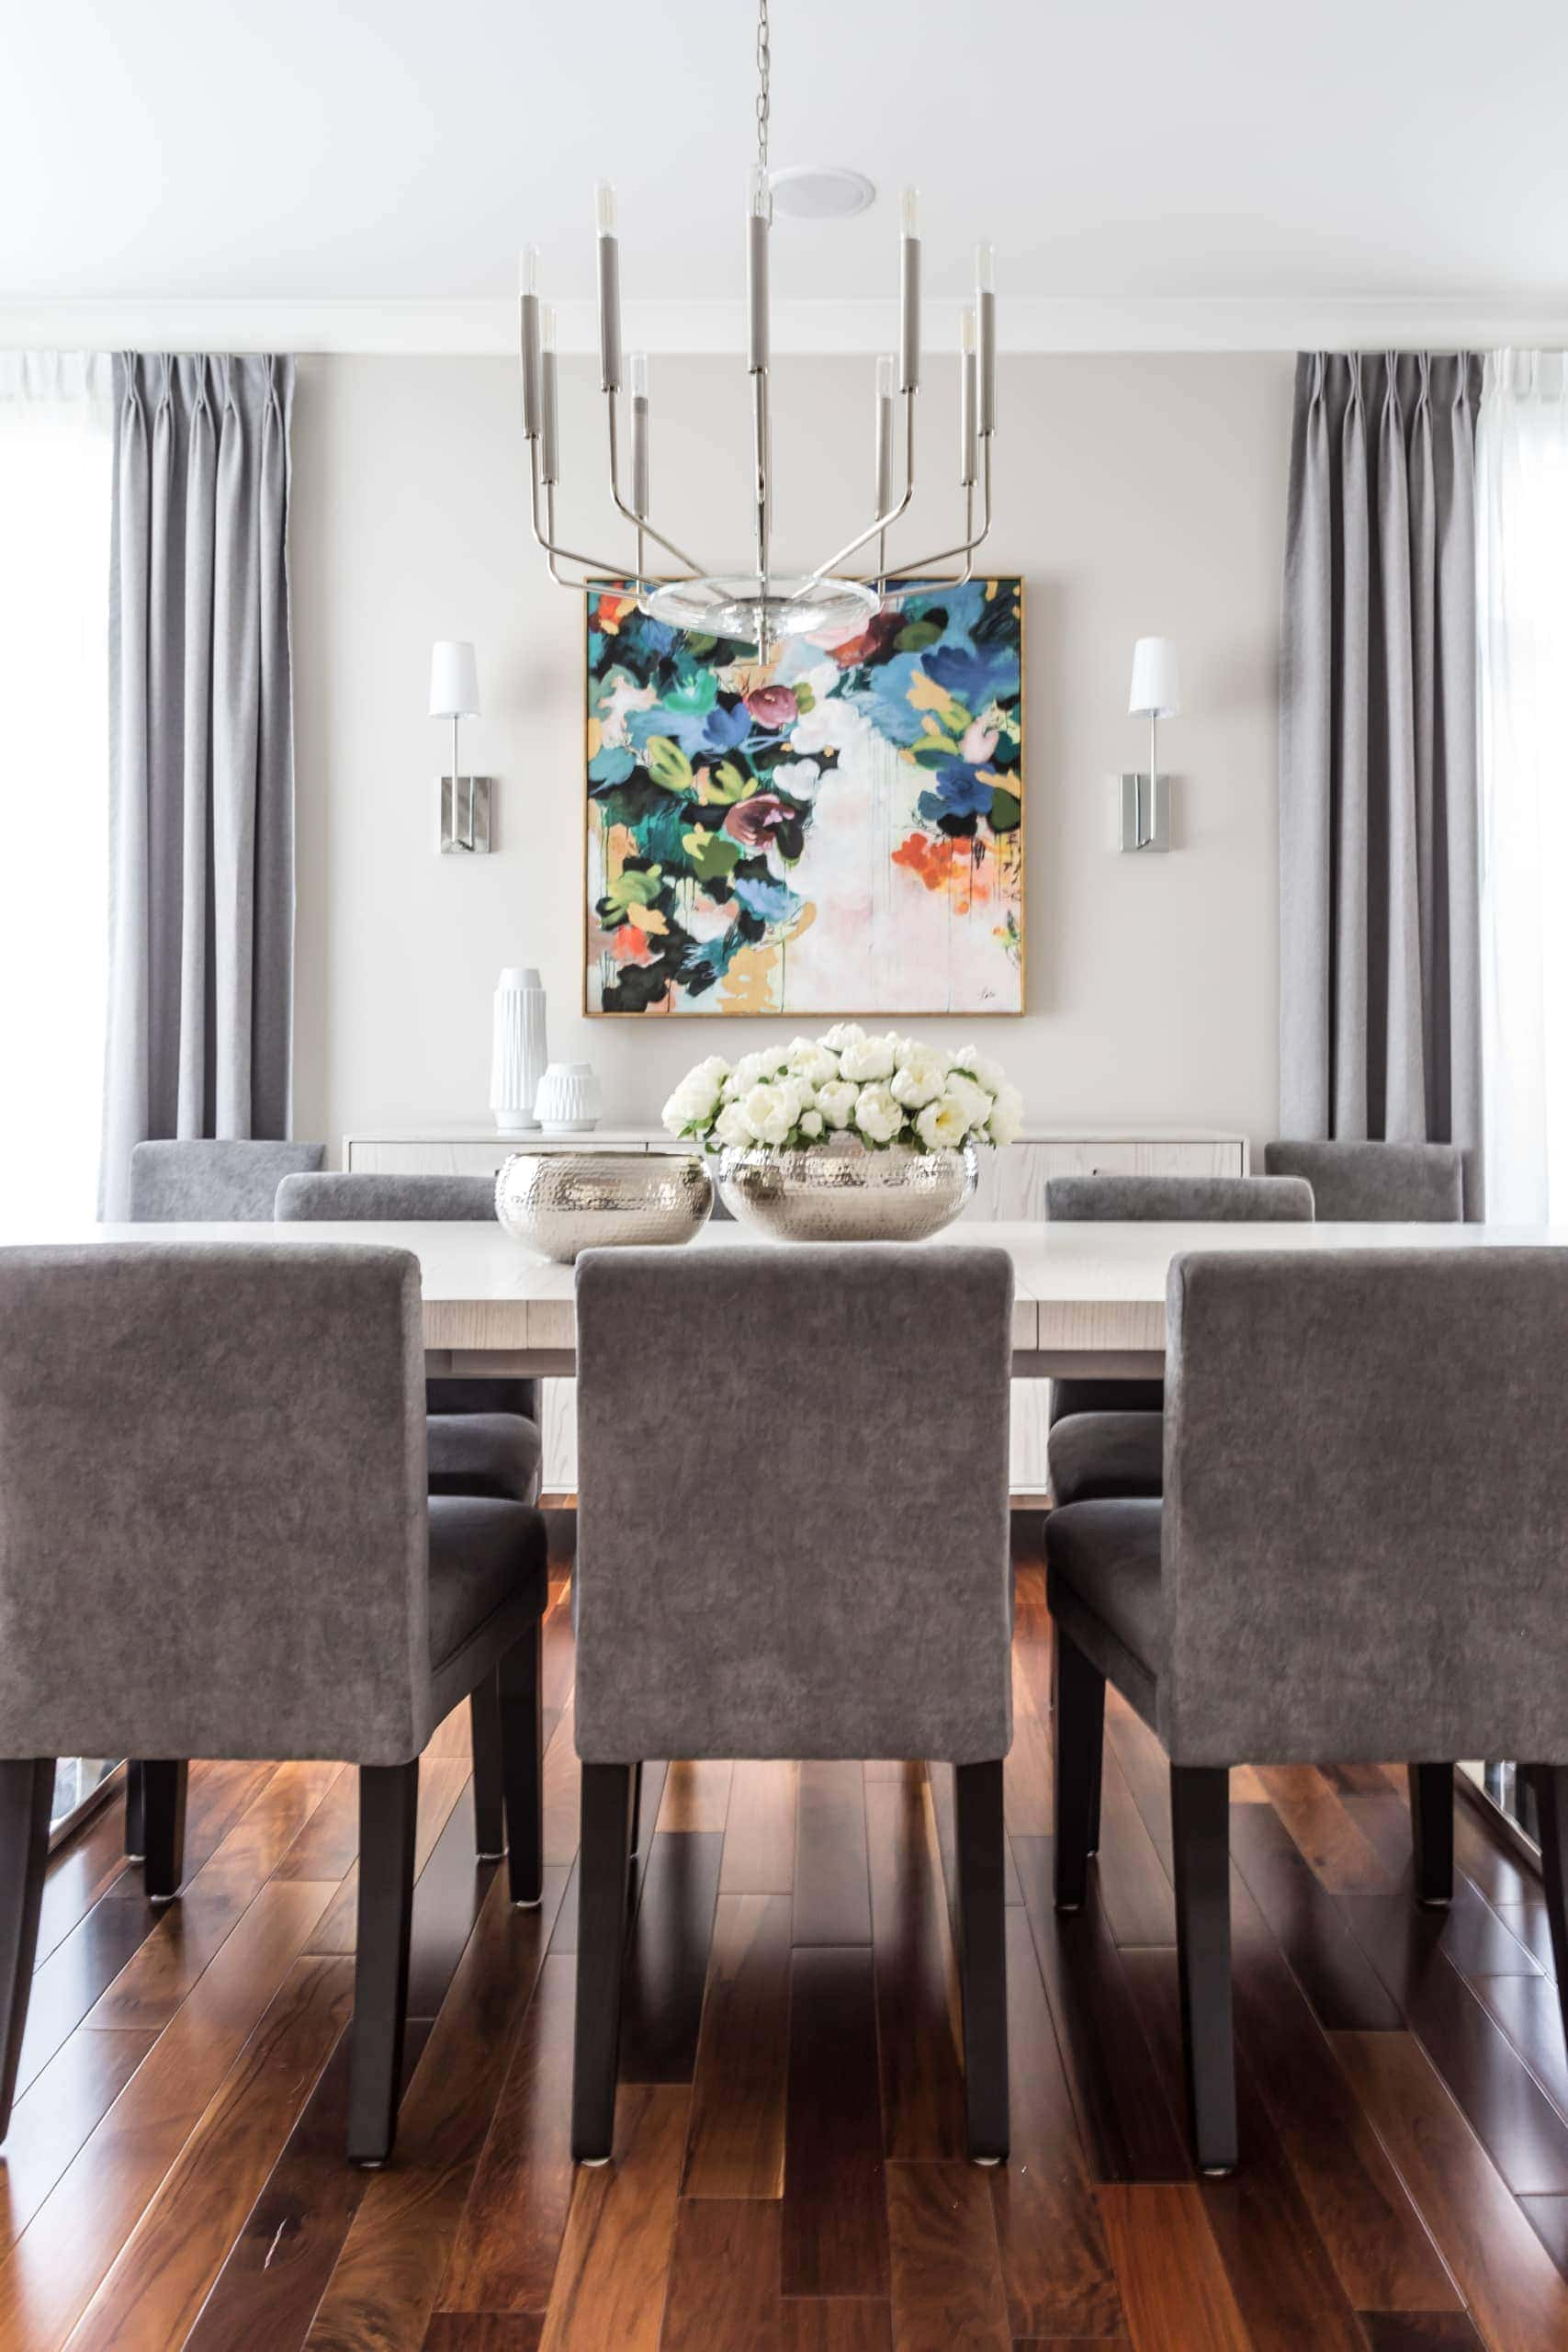 Modern, clean dining room with a low chandelier above the table